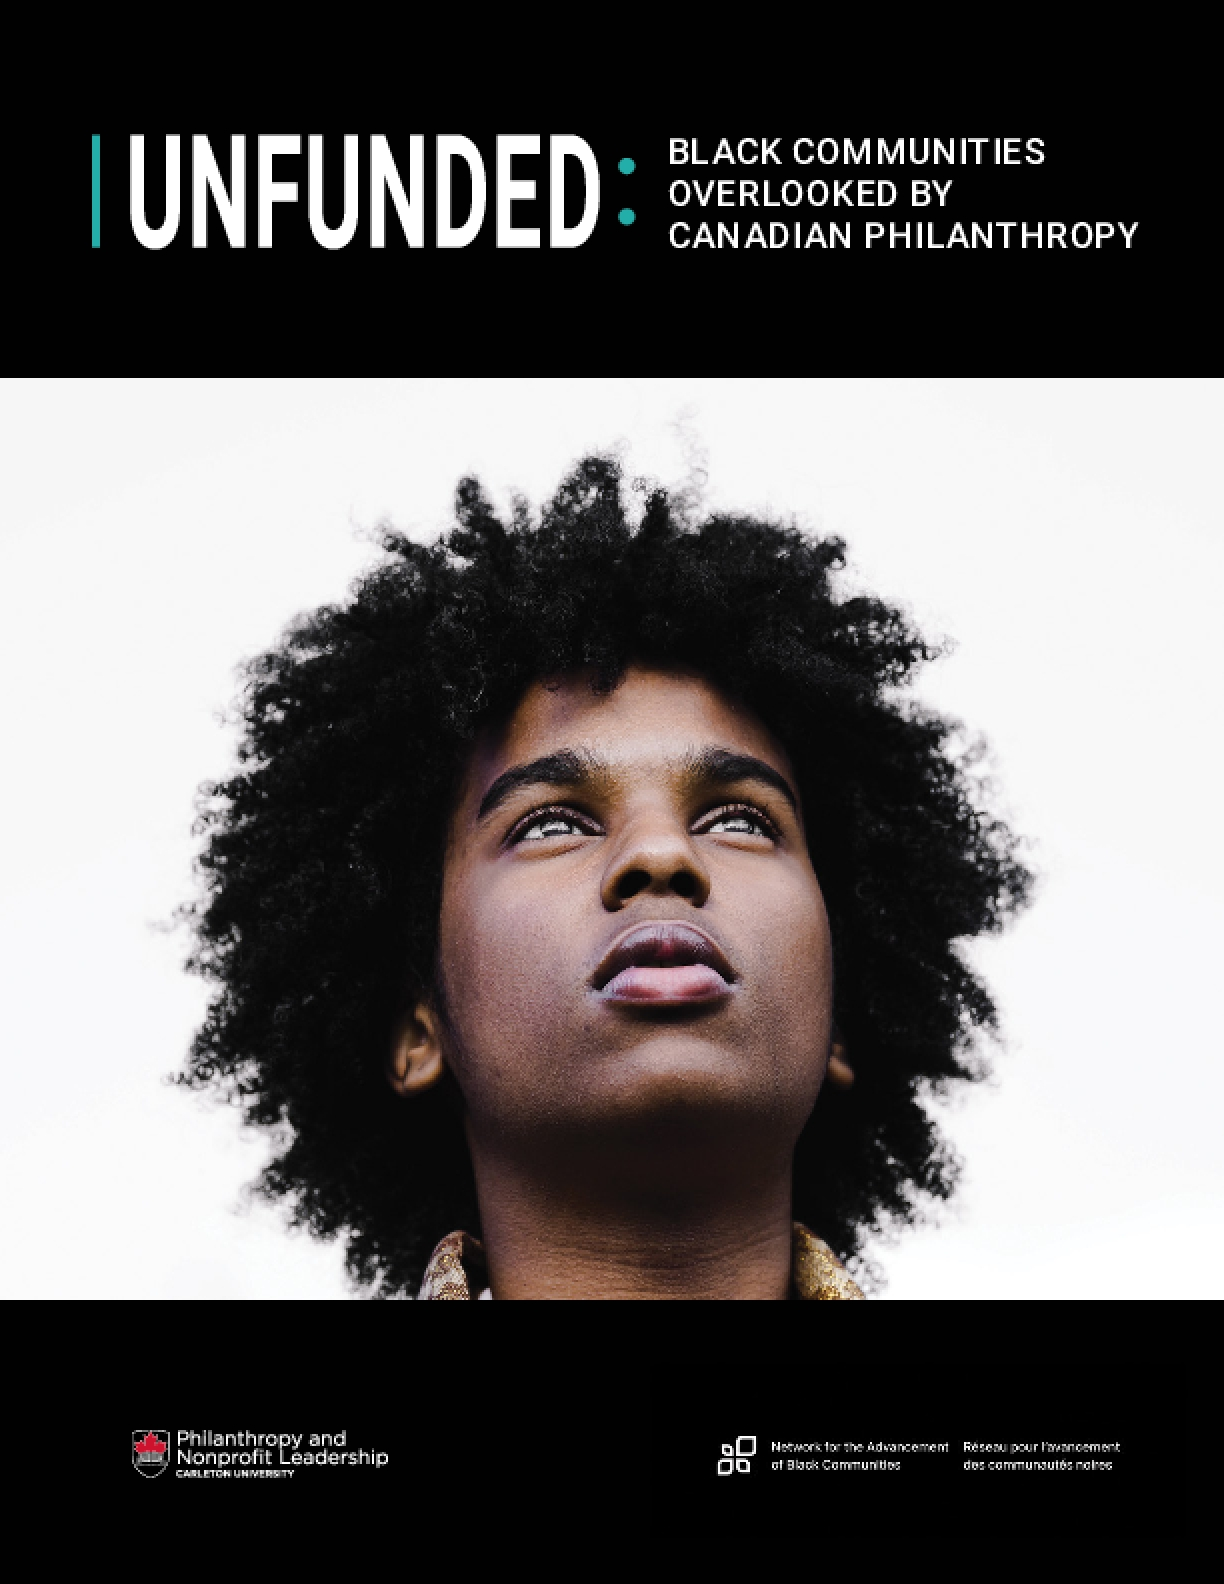 Unfunded: Black Communities Overlooked by Canadian Philanthropy